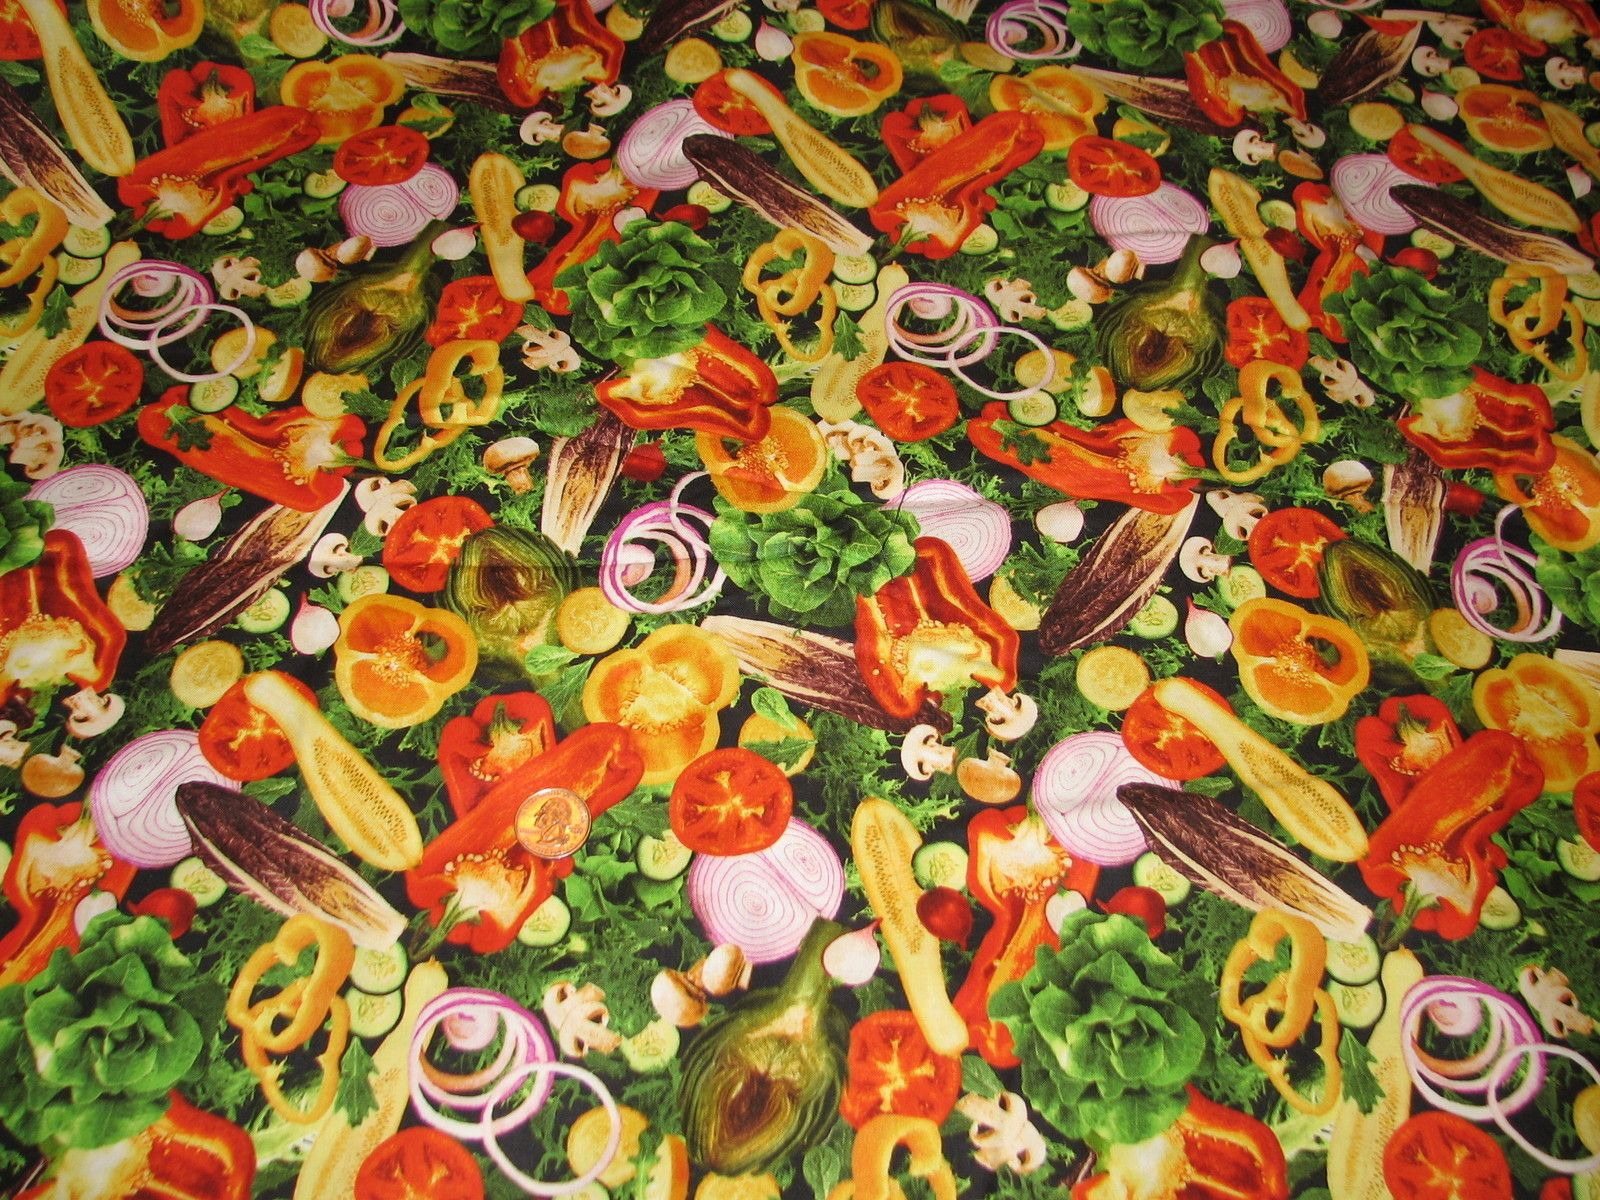 Quilt Fabric One Yard Salad Vegetables New Onion Pepper